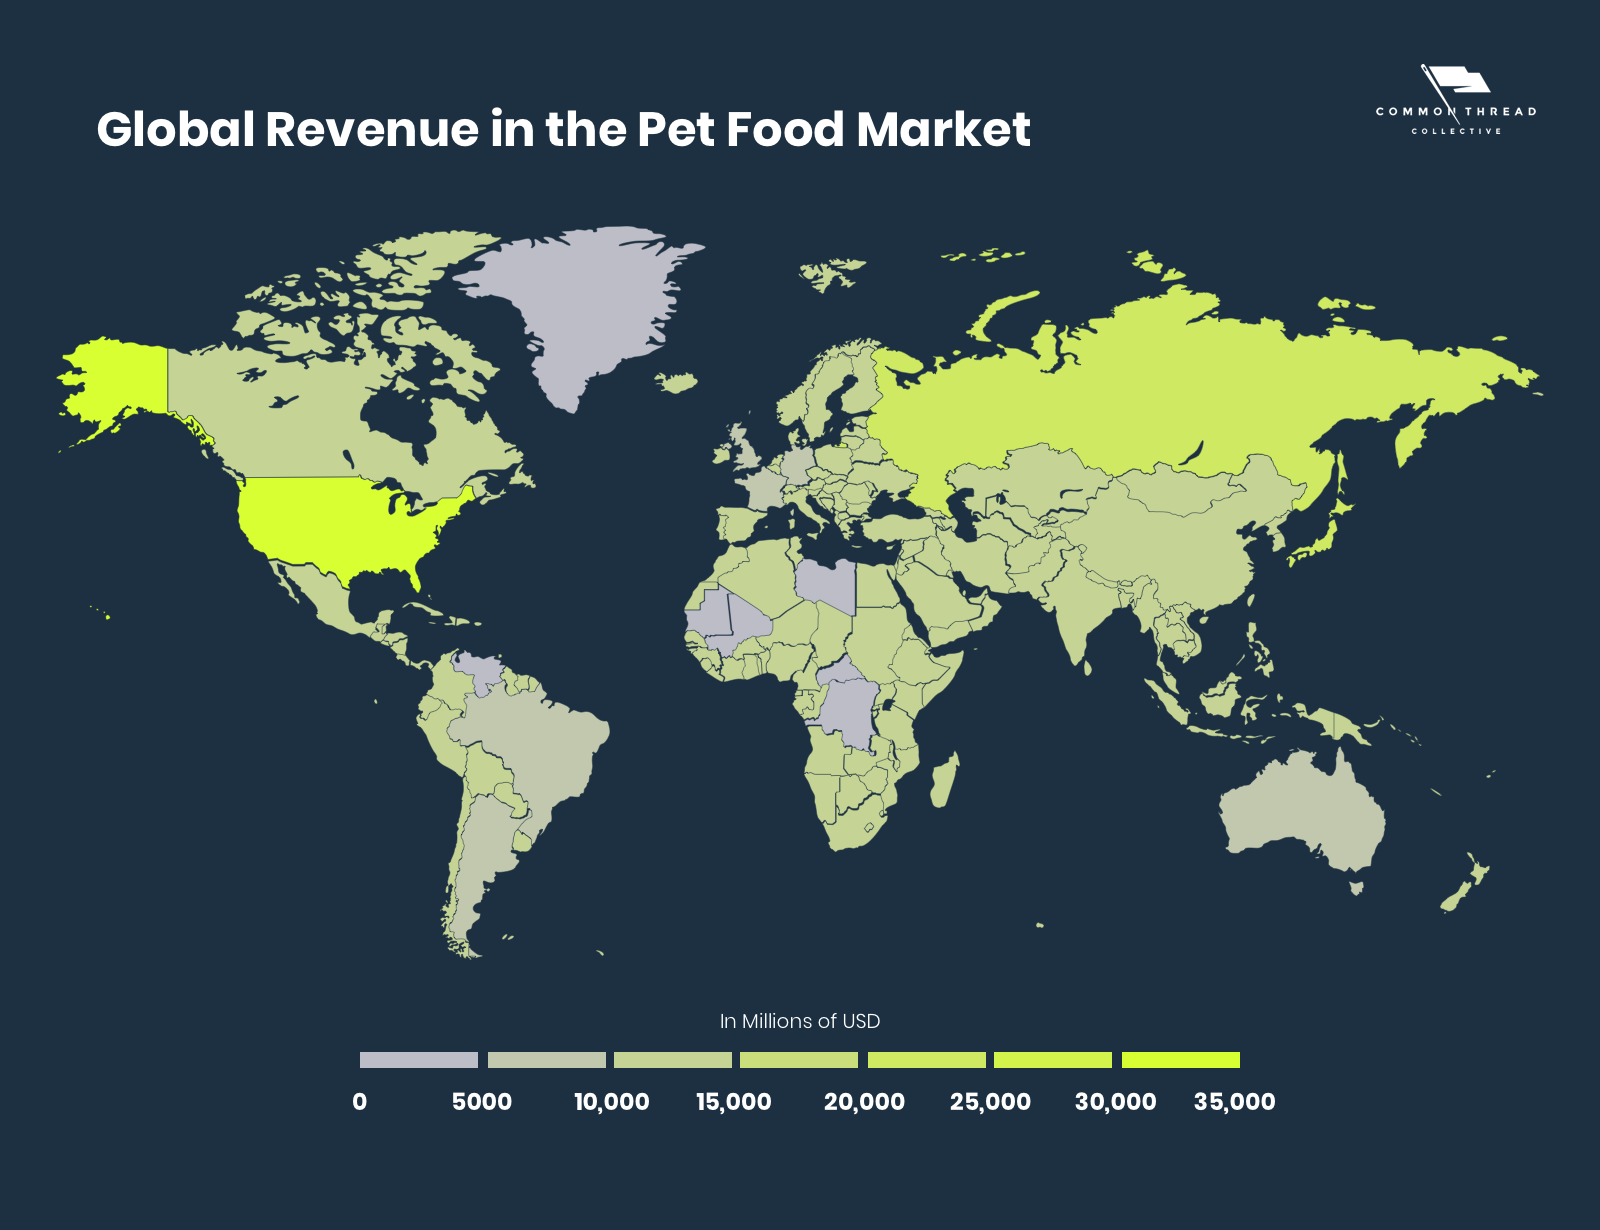 Global Revenue in the Pet Food Market